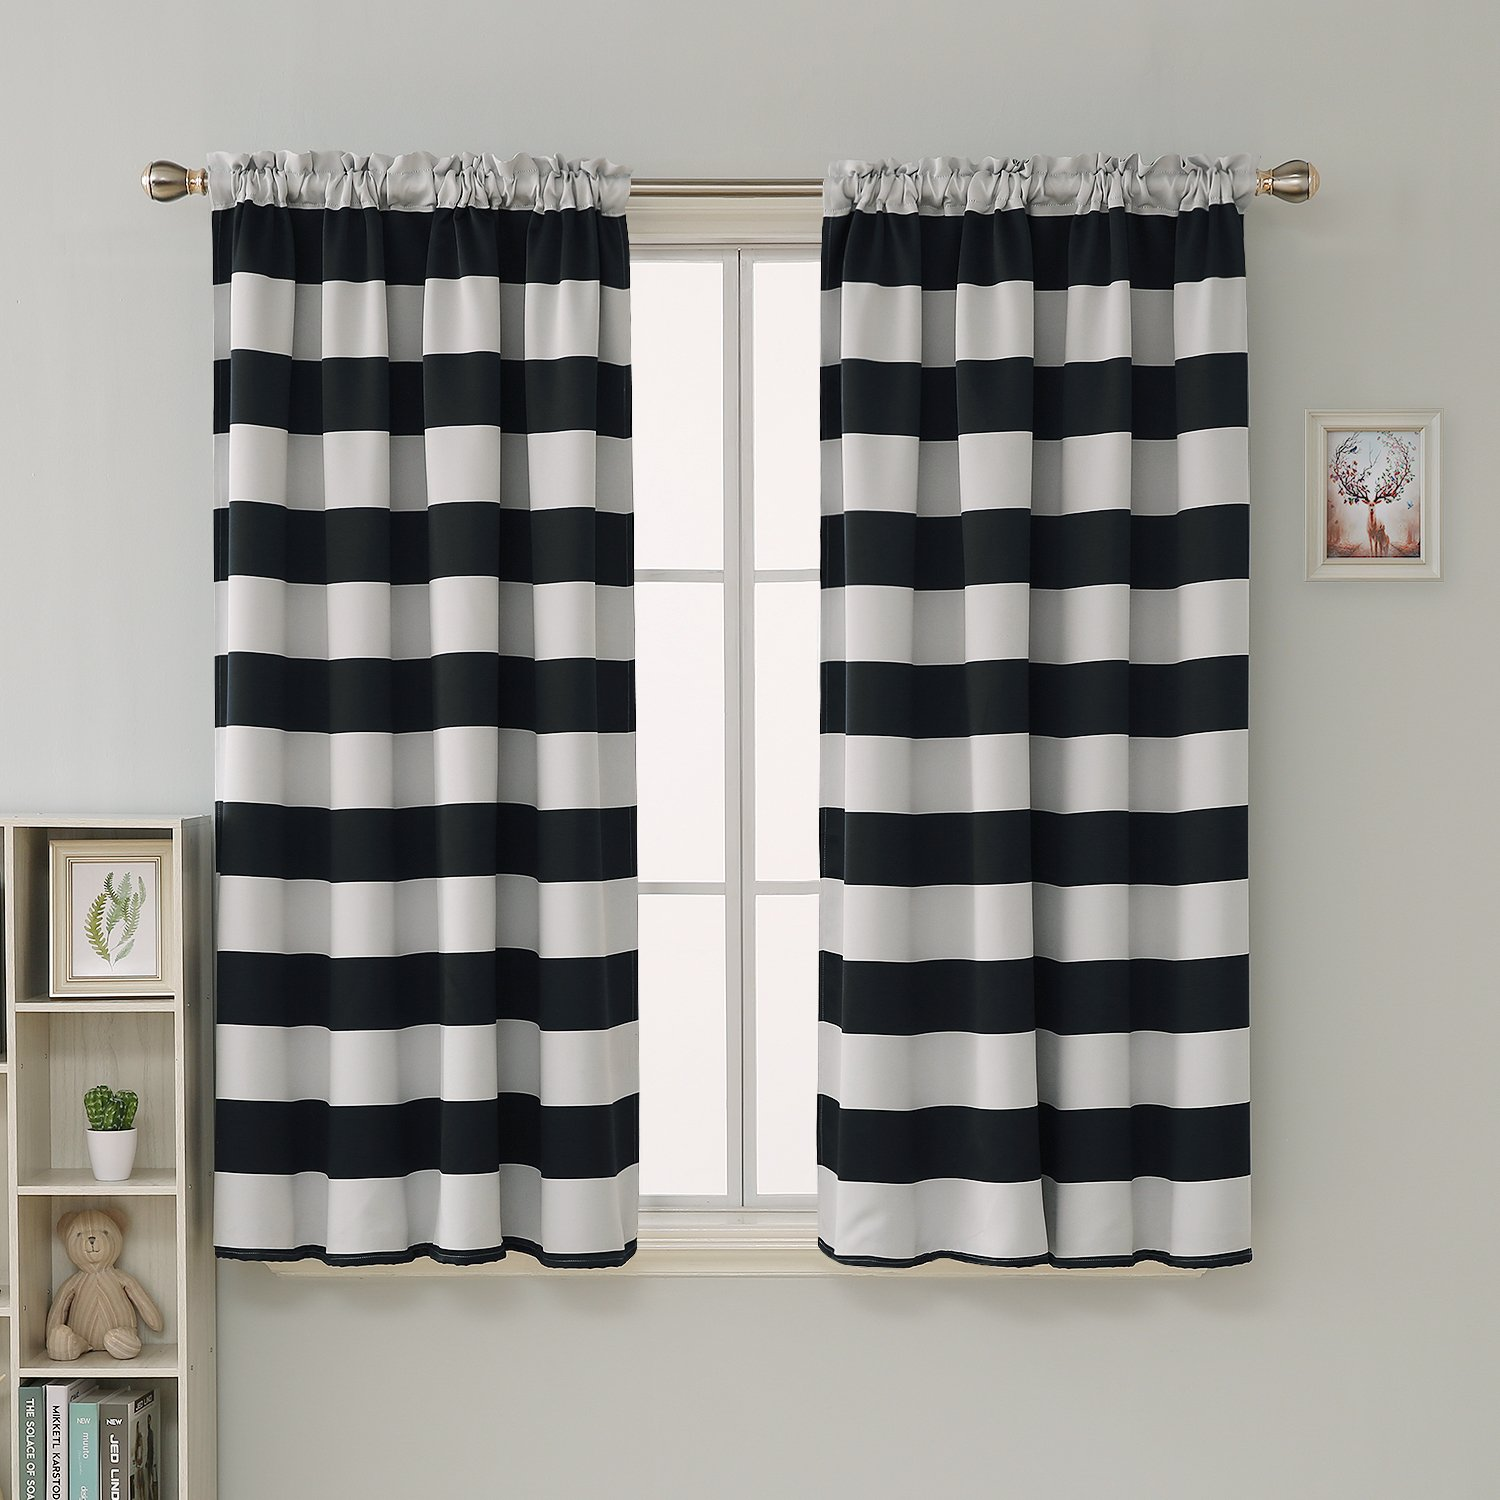 Amazon com deconovo striped blackout curtains rod pocket black and greyish white striped curtains for living room 52w x 63l black 2 panel curtains home